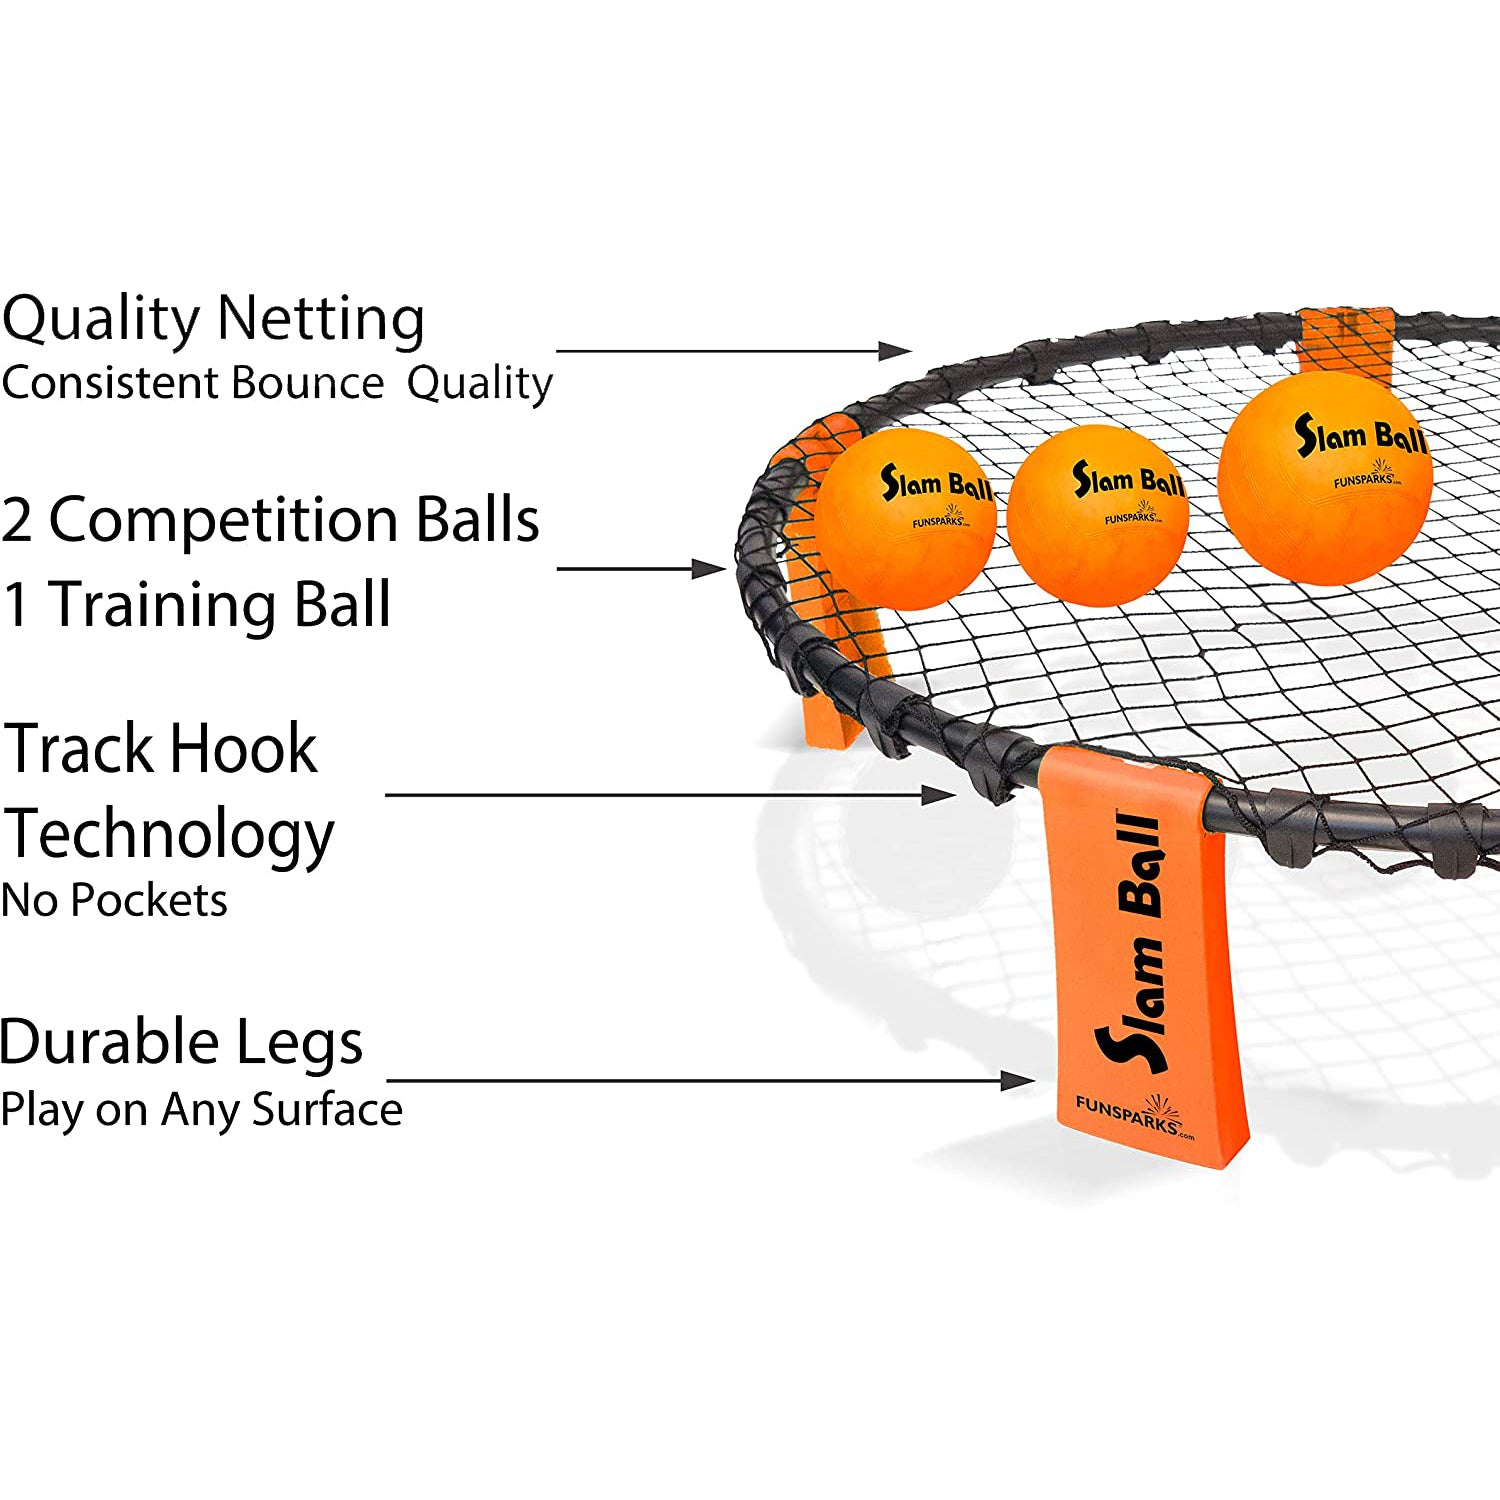 Slam Ball has quality netting and track hook technology